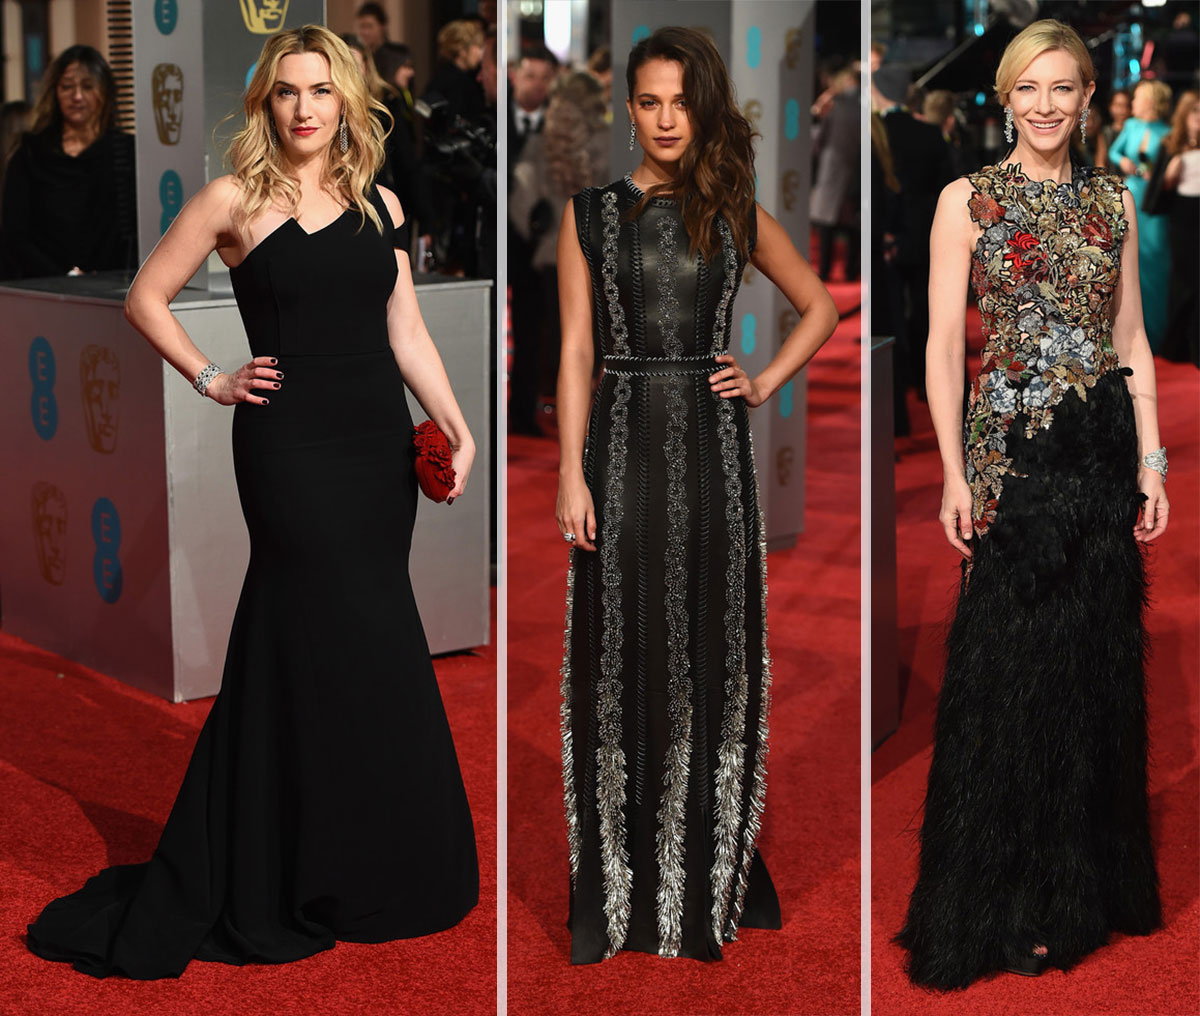 2016 bafta red carpet dresses red black elegance stylefrizz - Black and white red carpet dresses ...